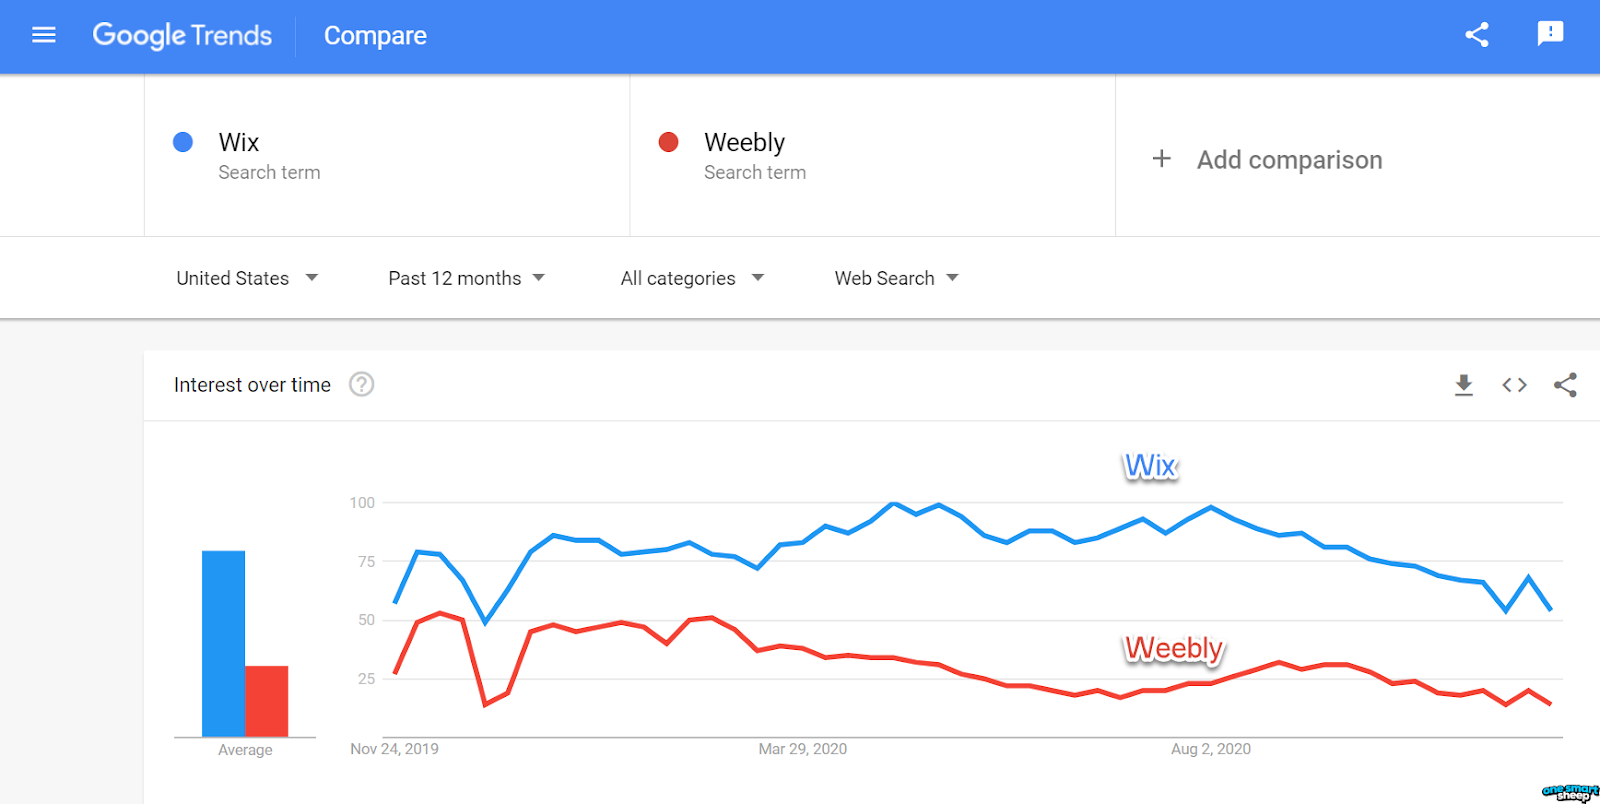 Weebly and Wix Google Trend